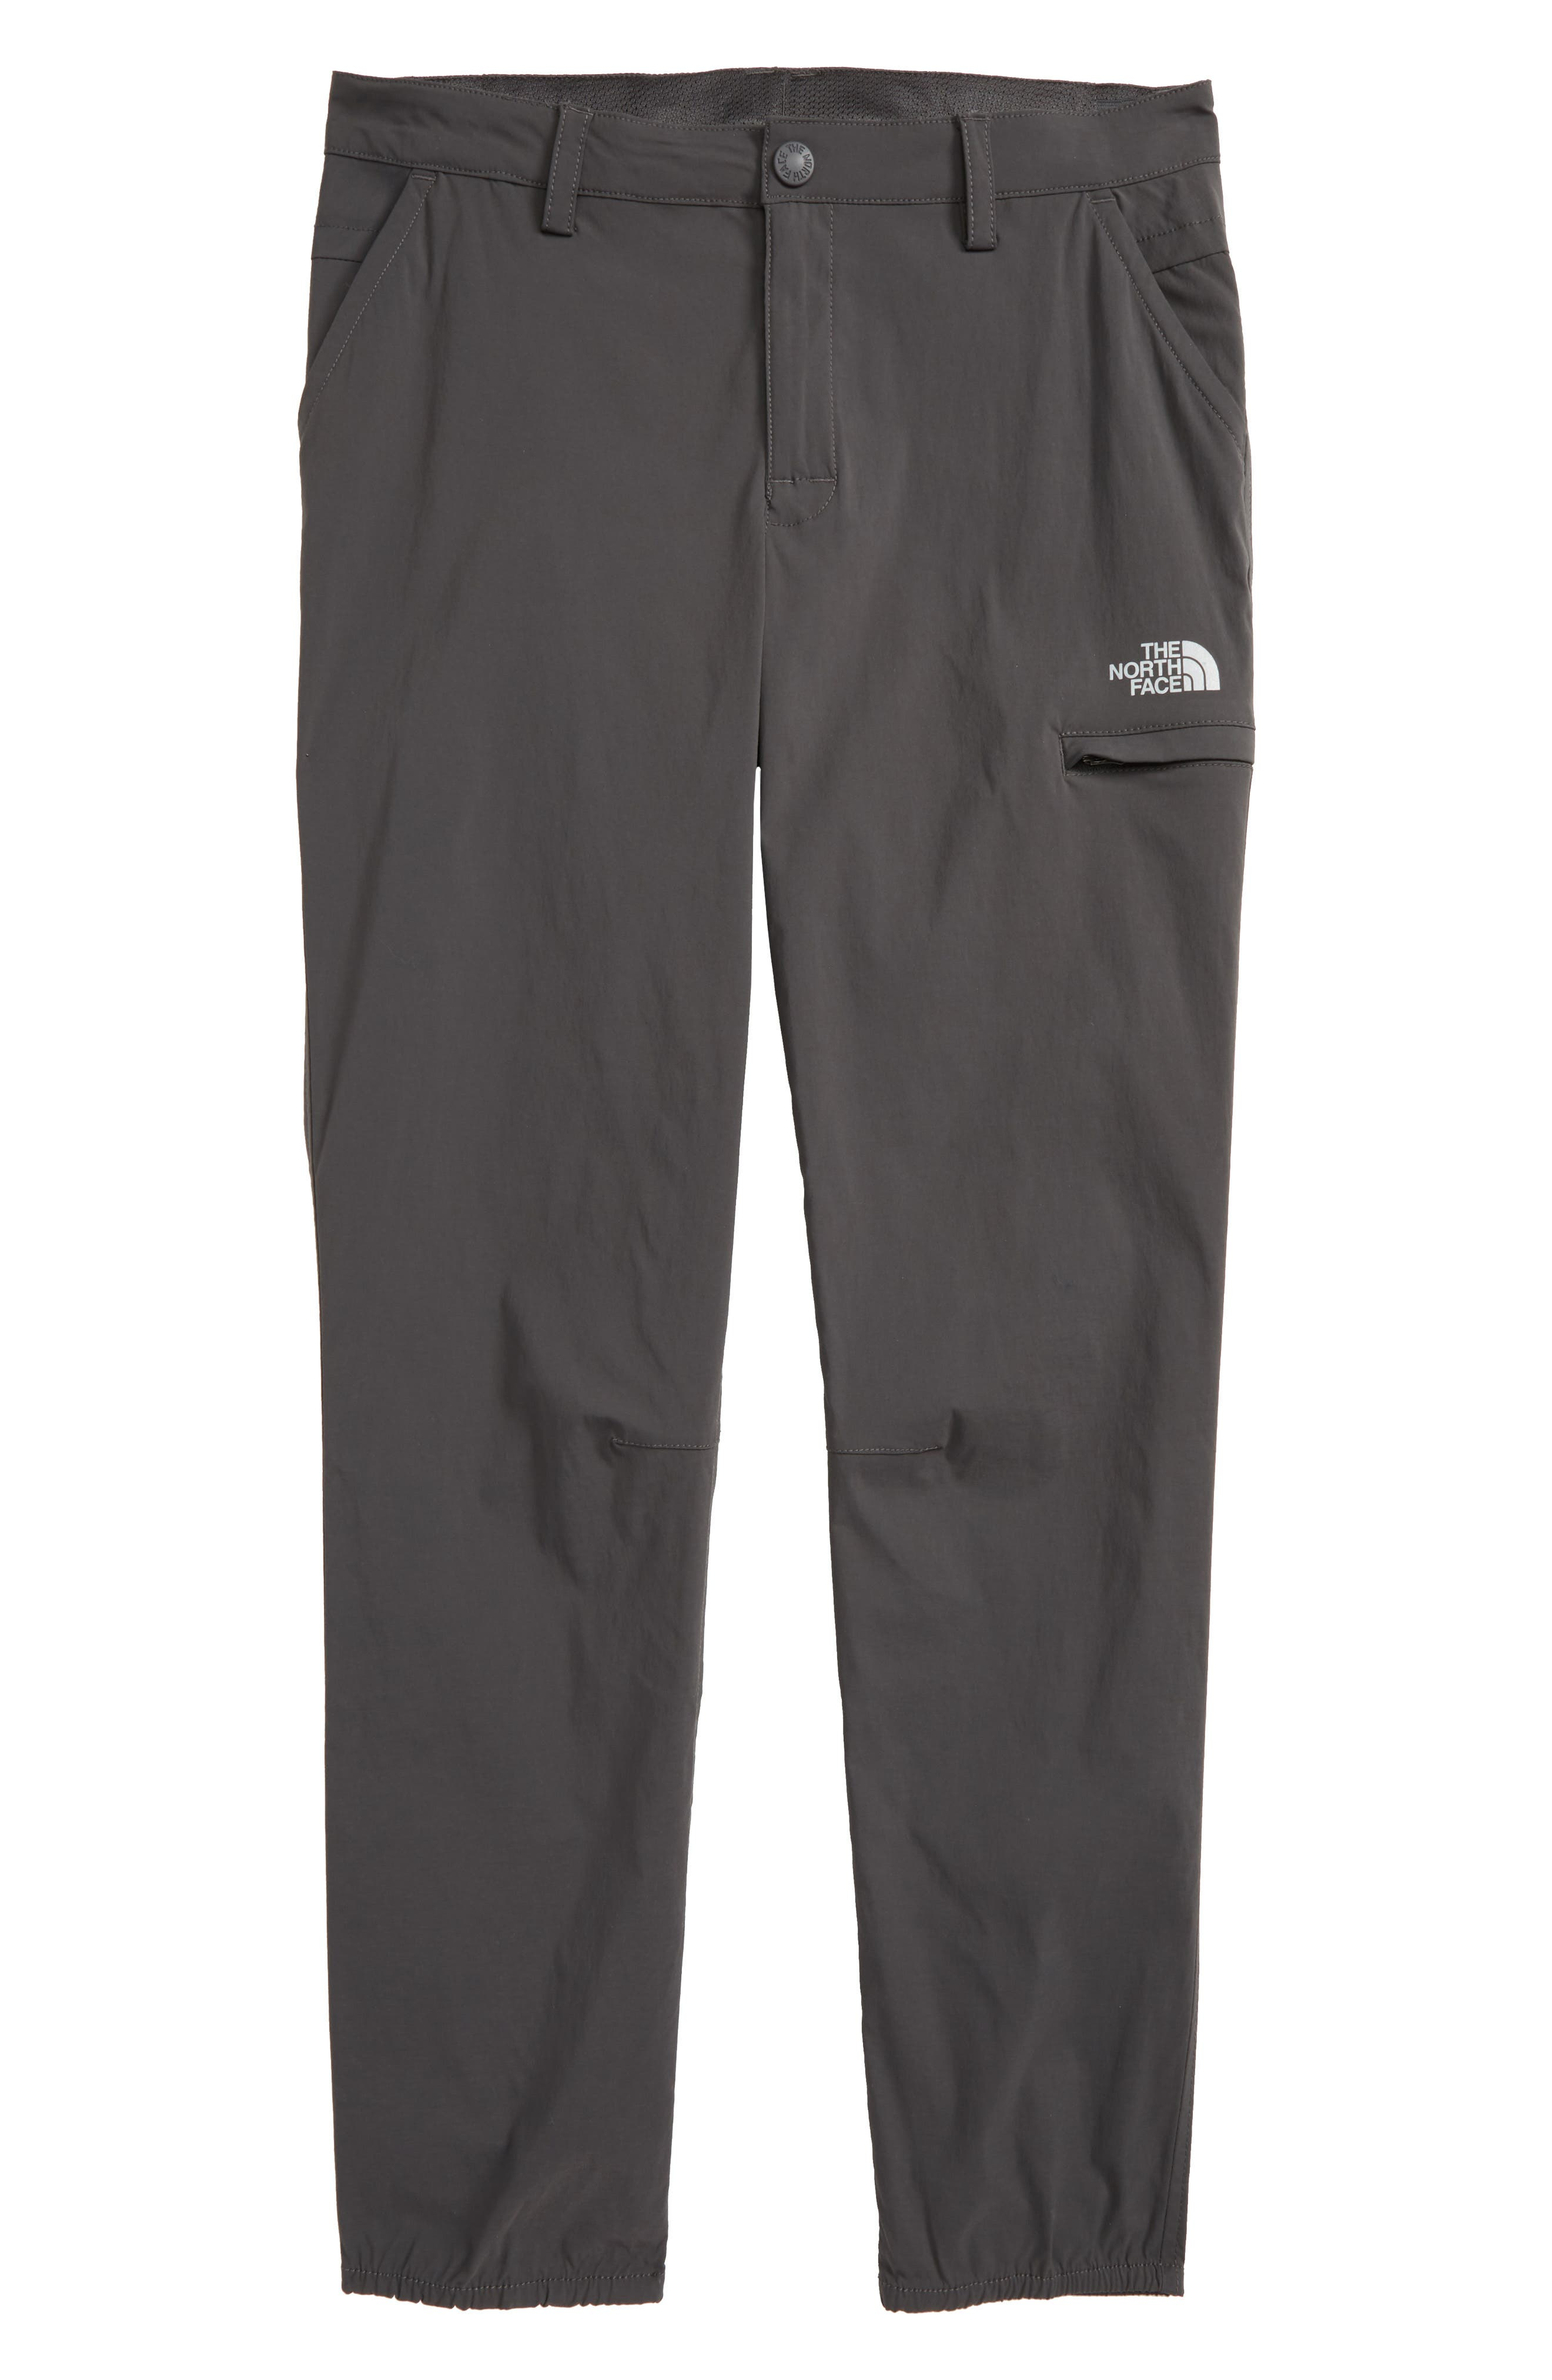 The North Face Spur Trail Pants (Big Girls)